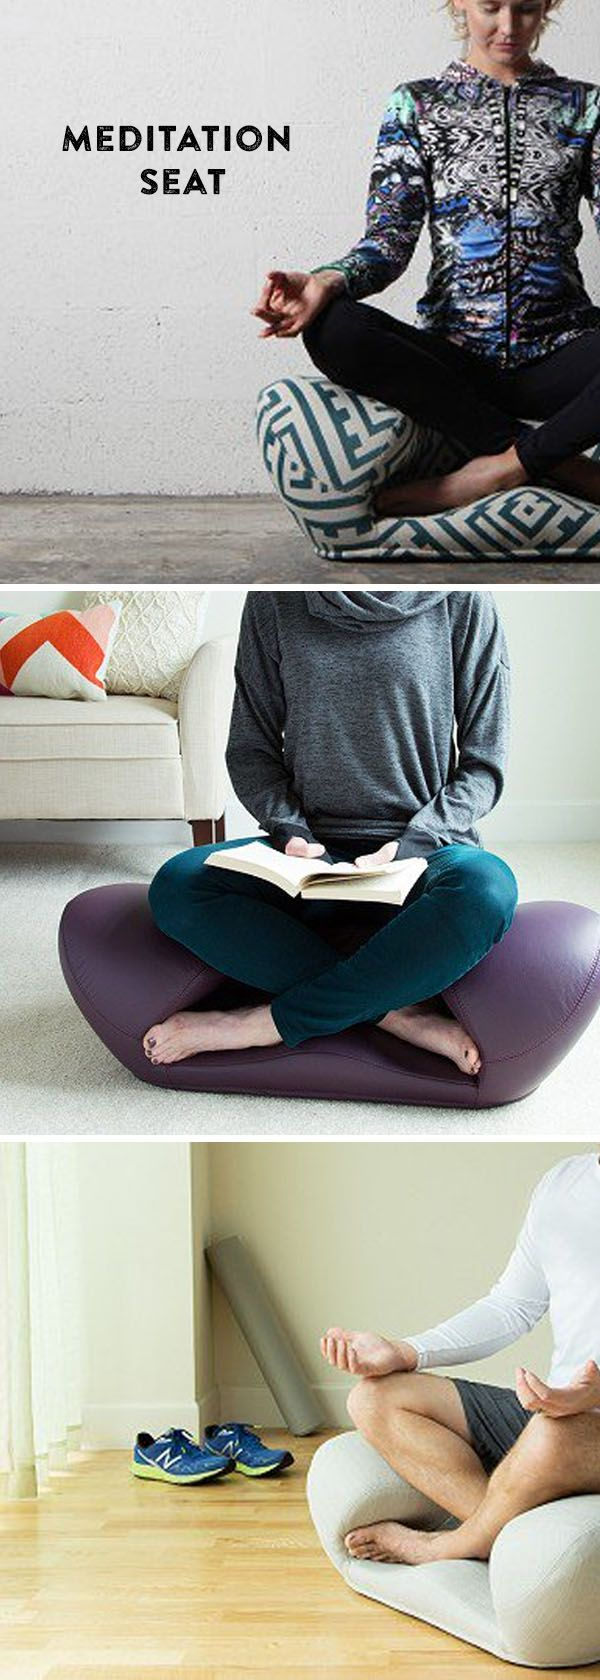 Meditate relax or work in comfort the unusual lotusinspired